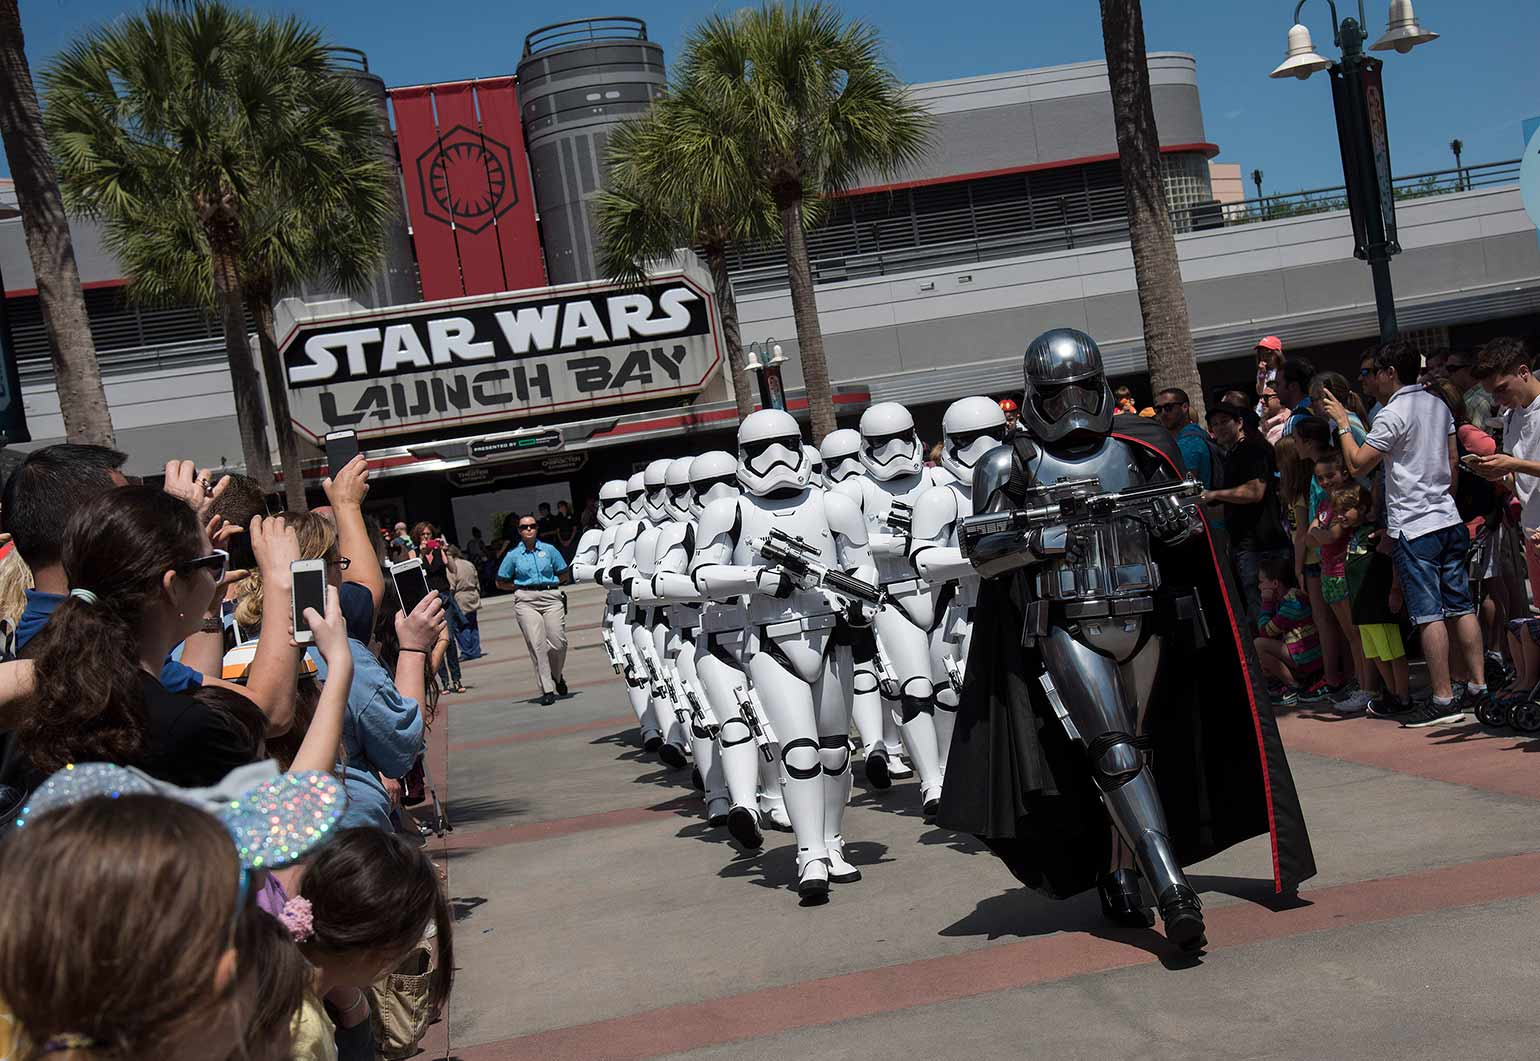 Star Wars' Captain Phasma leads stormtroopers at Disney's Hollywood Studios.